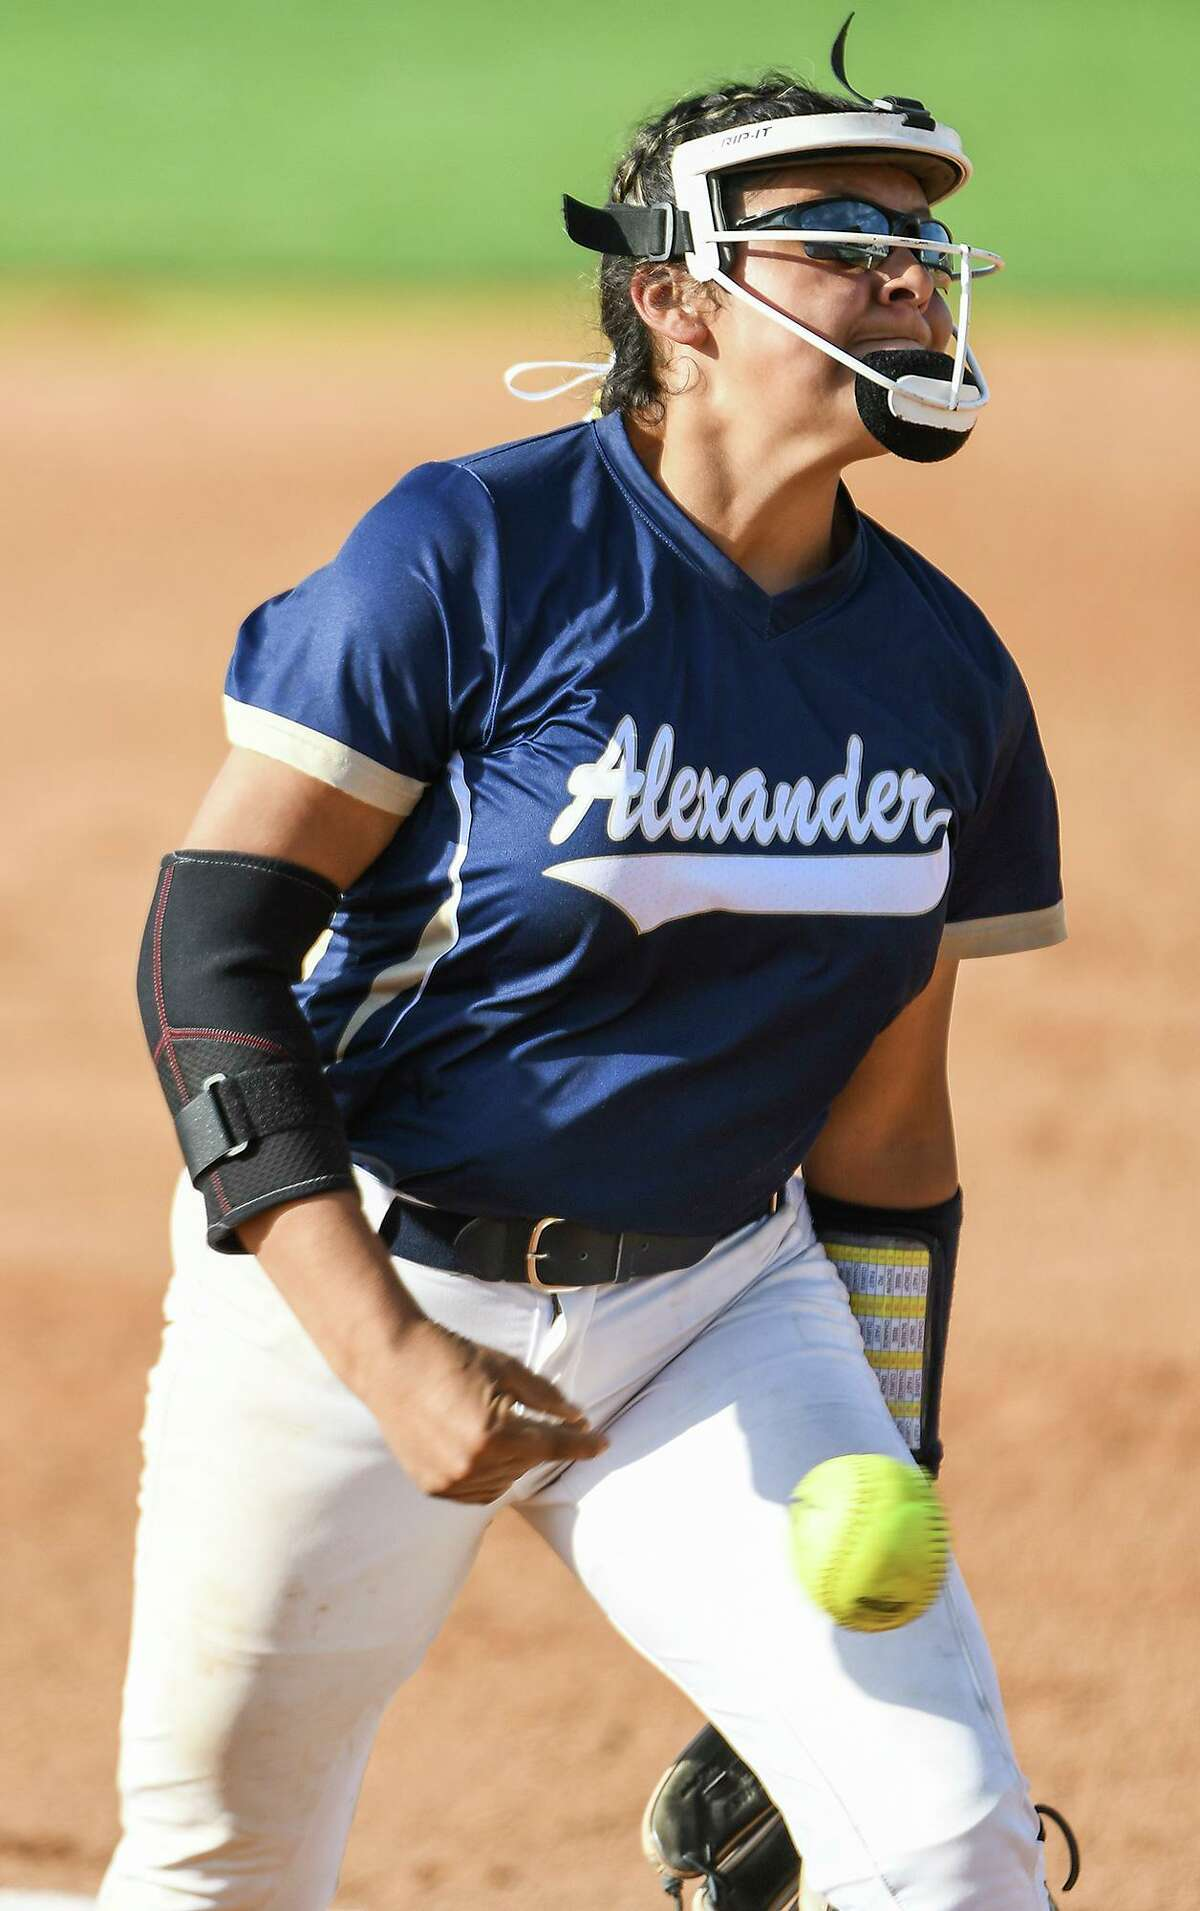 Krista Gamez earned the win Tuesday and had two hits at the plate as Alexander run ruled Nixon 15-0 in four innings.